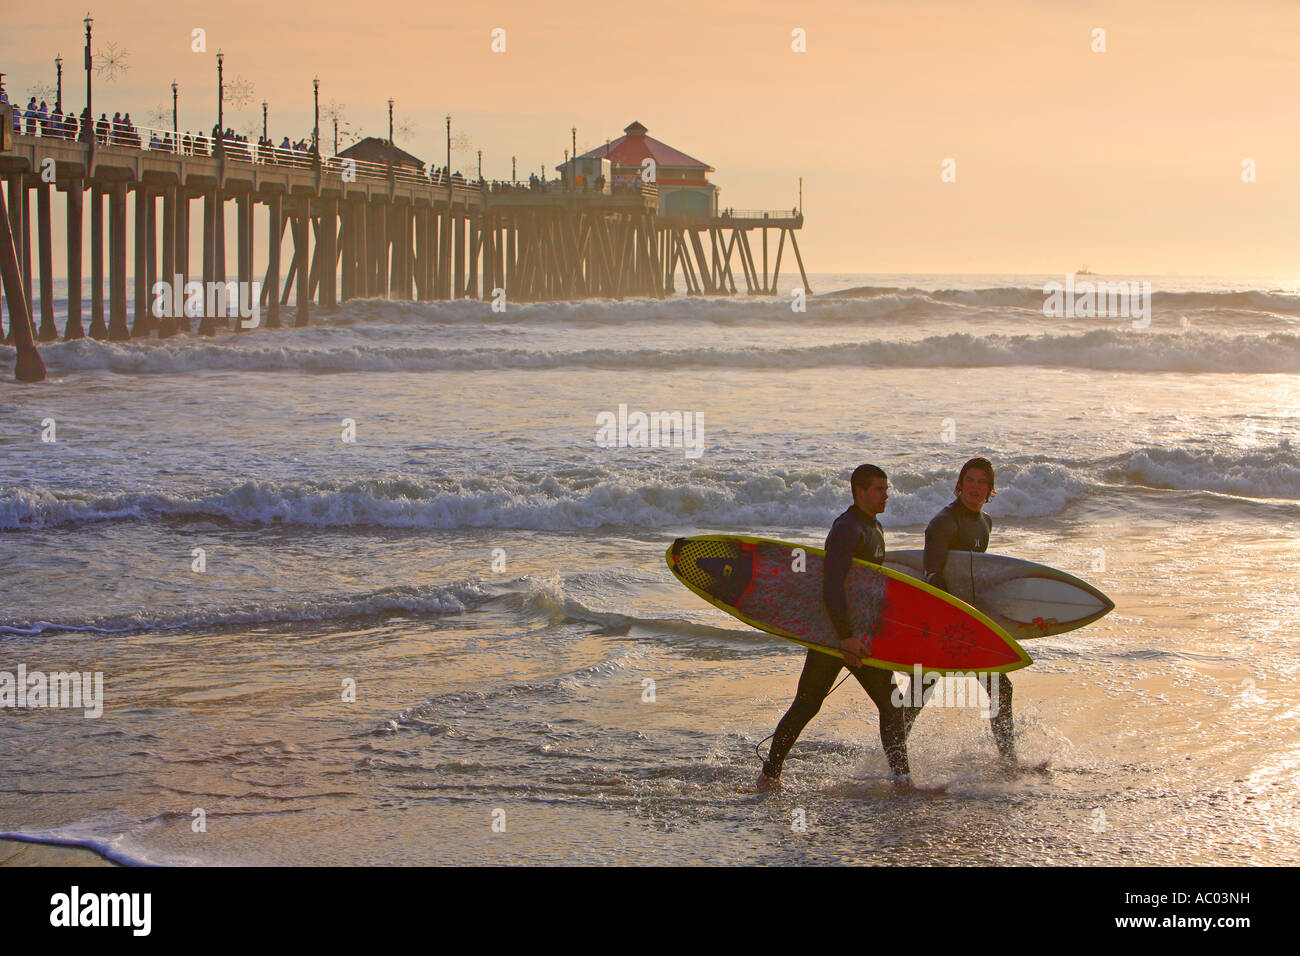 Surfers Walking Infront Of The Hunington Beach Pier Hunington Beach Orange County California United States MR Stock Photo